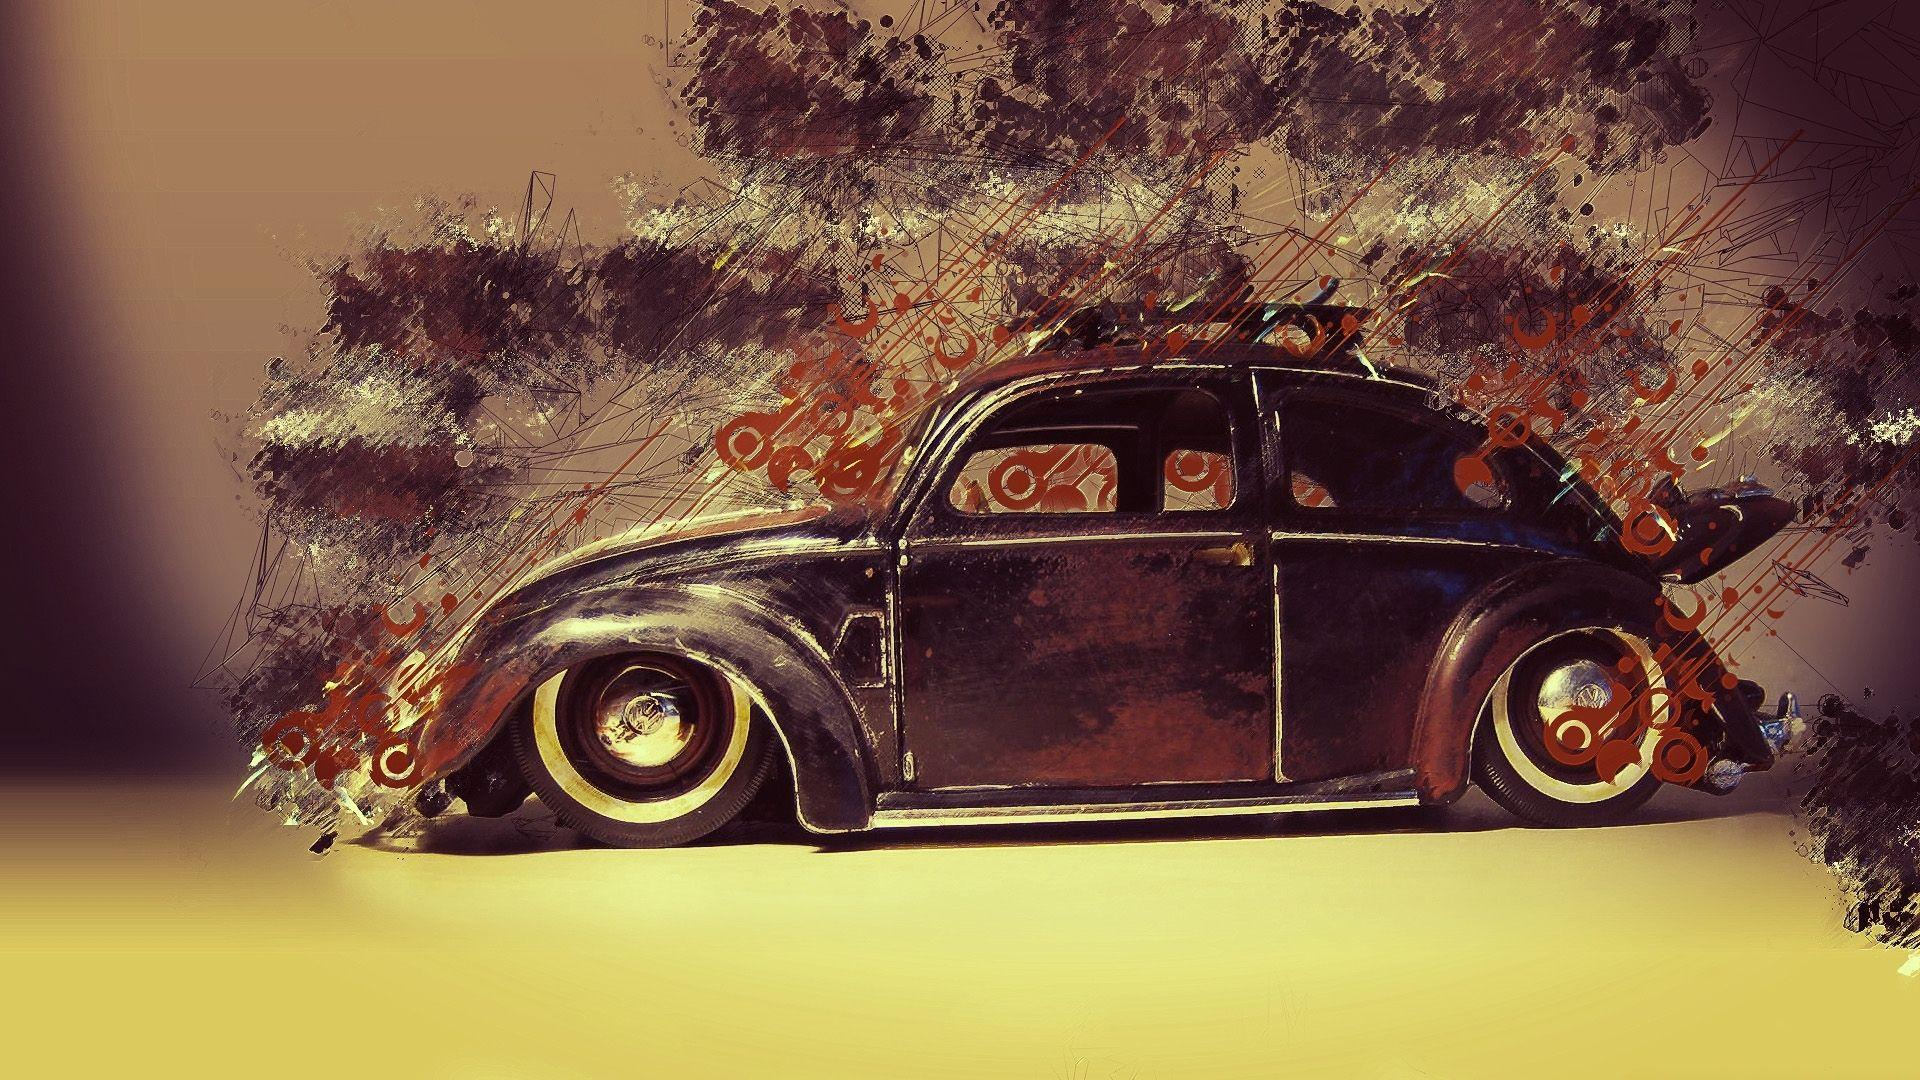 Cool VW Beetle Classic Wallpapers Wallpapers Themes